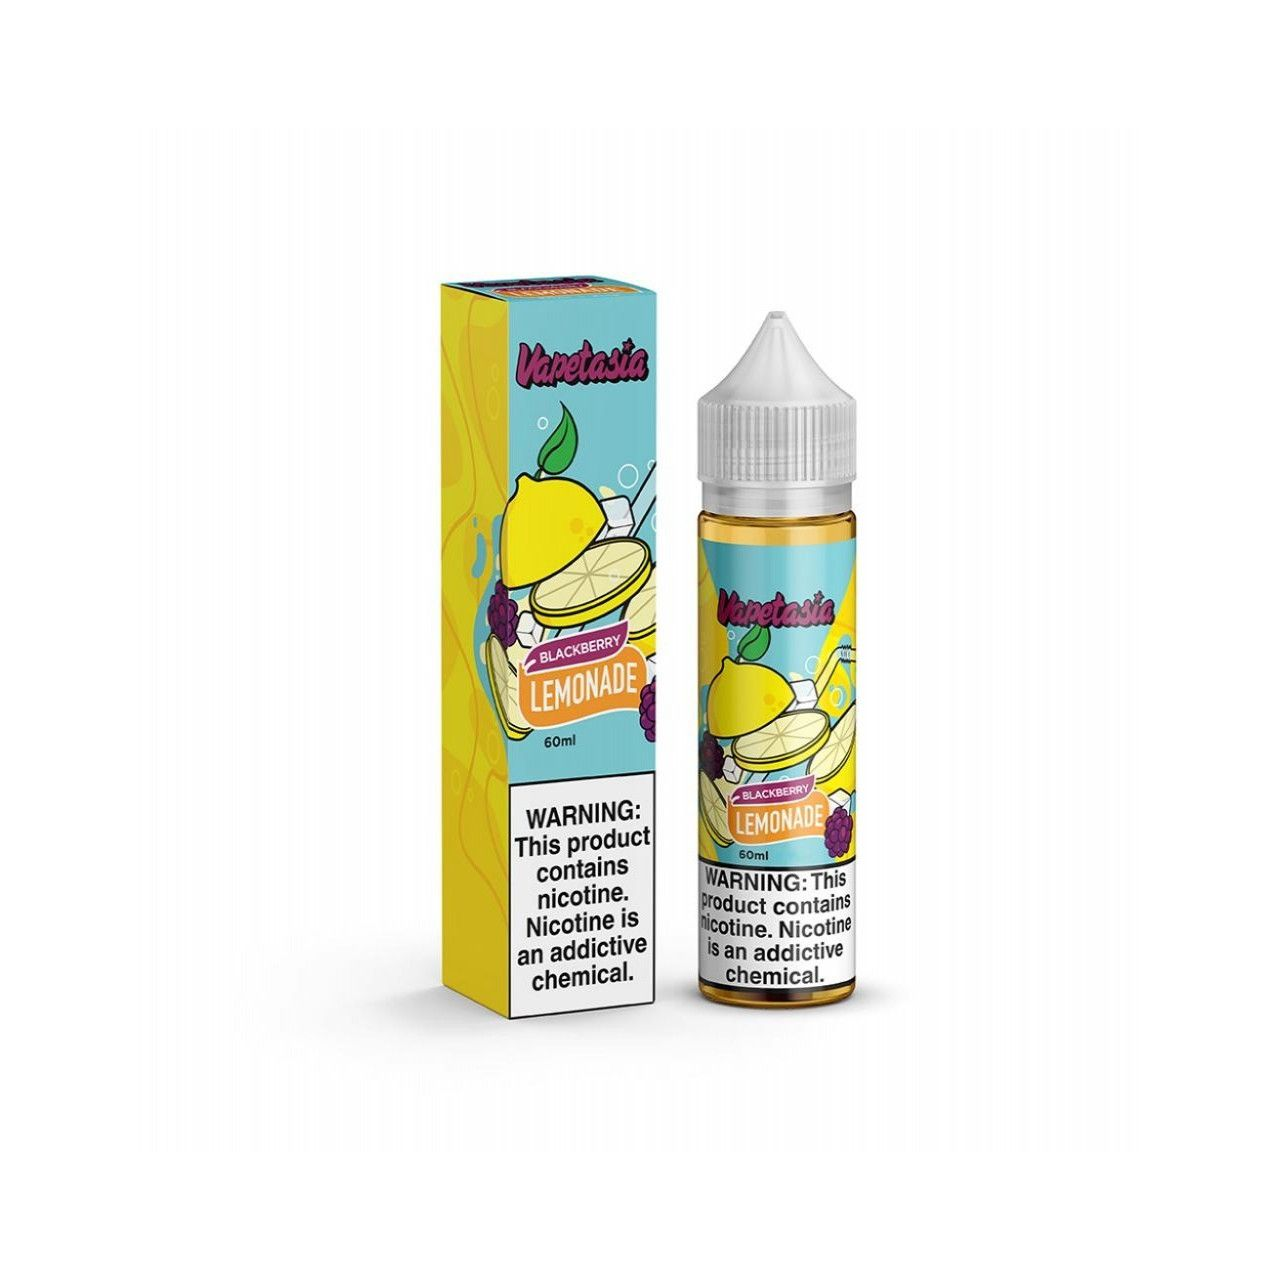 Juice Vapestasia - Blackberry Lemonade